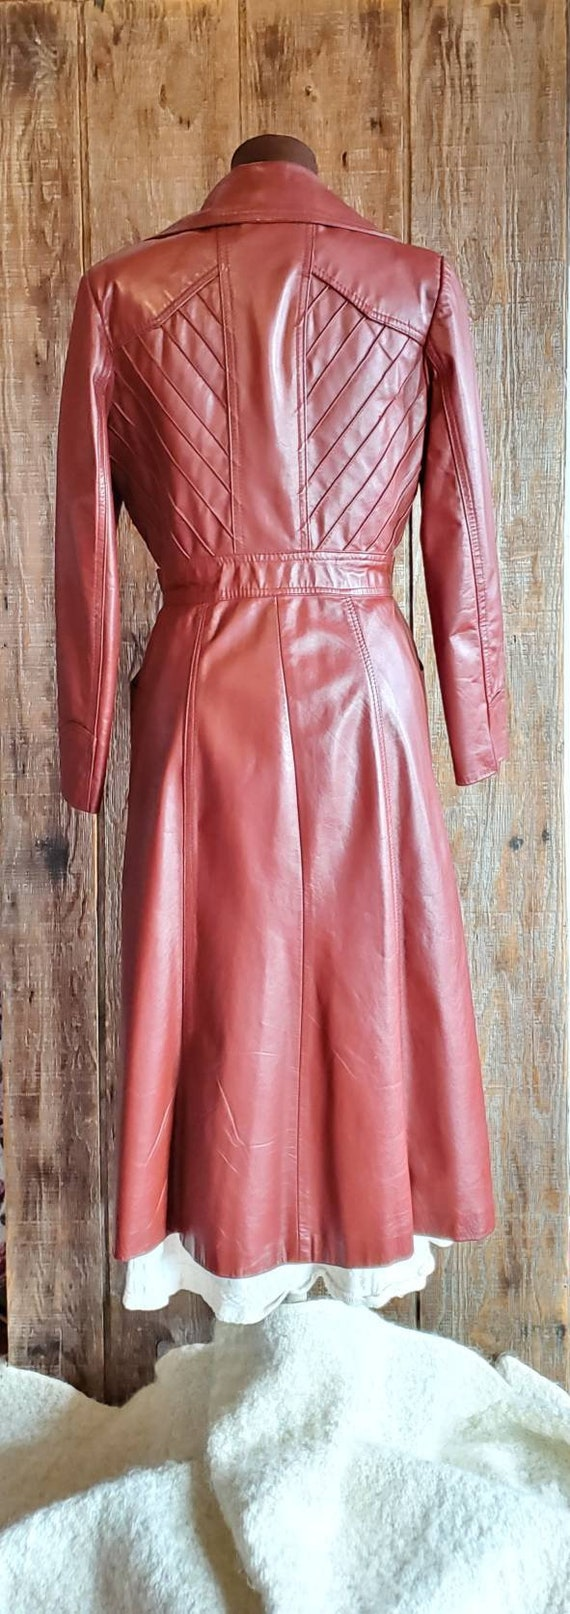 Vintage 70's Leather Trench Coat - image 5